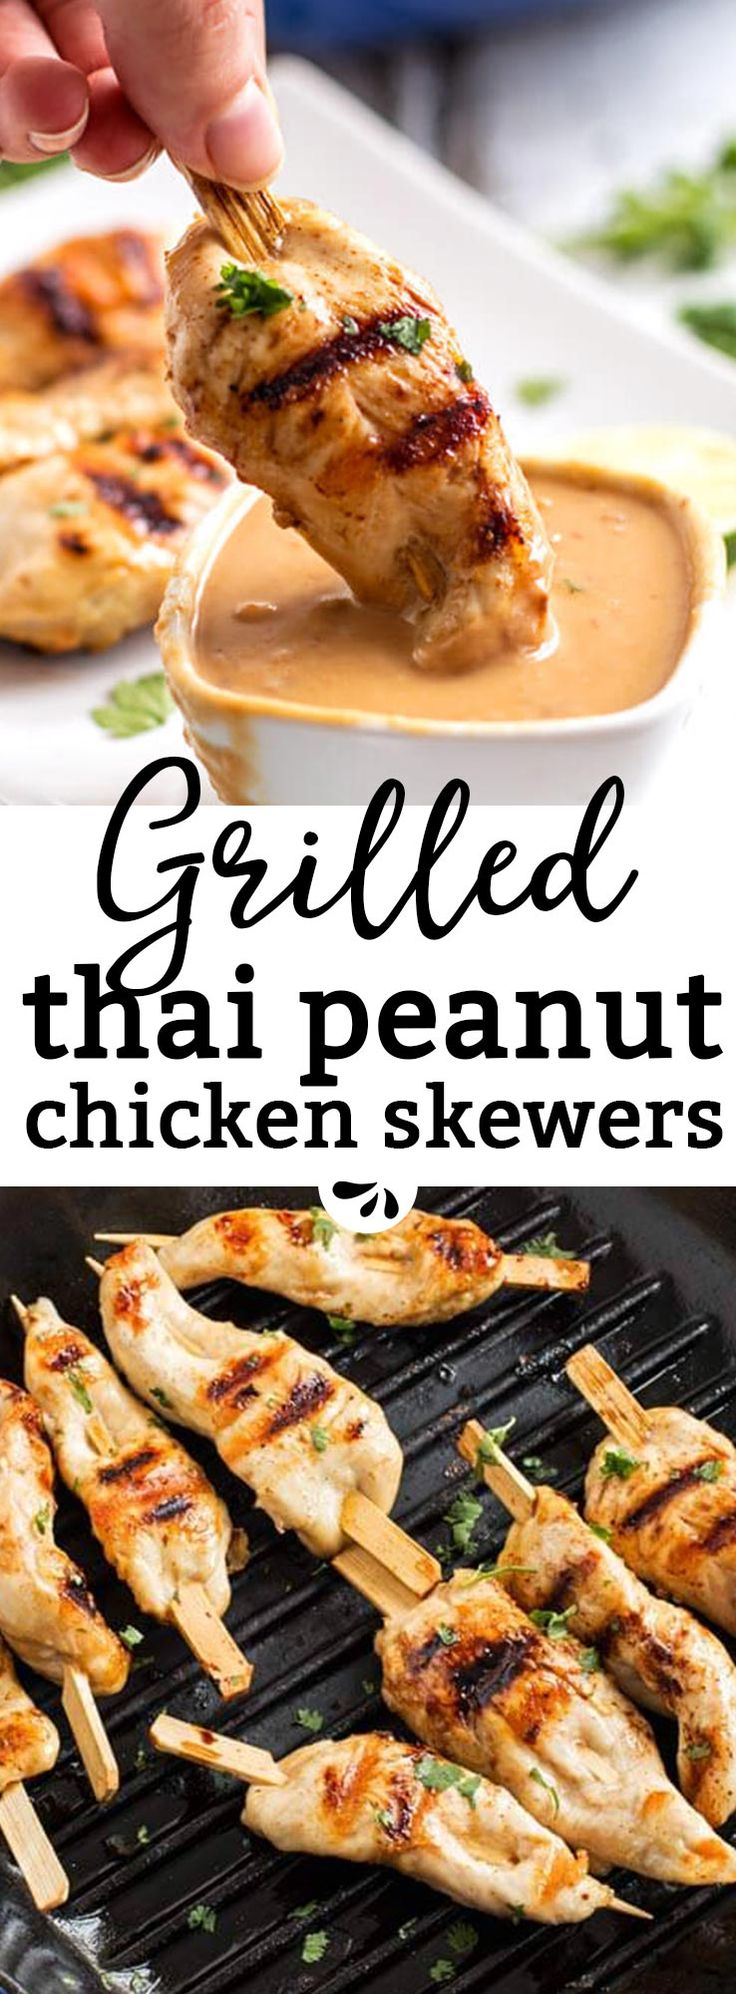 Are you looking for an easy grilled chicken recipe? These grilled chicken skewers with Thai peanut sauce are an incredible satay-inspired idea! Serve them as part of a BBQ potluck or summer picnic. They work as a simple dinner, too. The sauce is no-cook and made with just a few ingredients like peanut butter and lime juice. A simple, healthy and kid-friendly BBQ recipe everyone will enjoy!